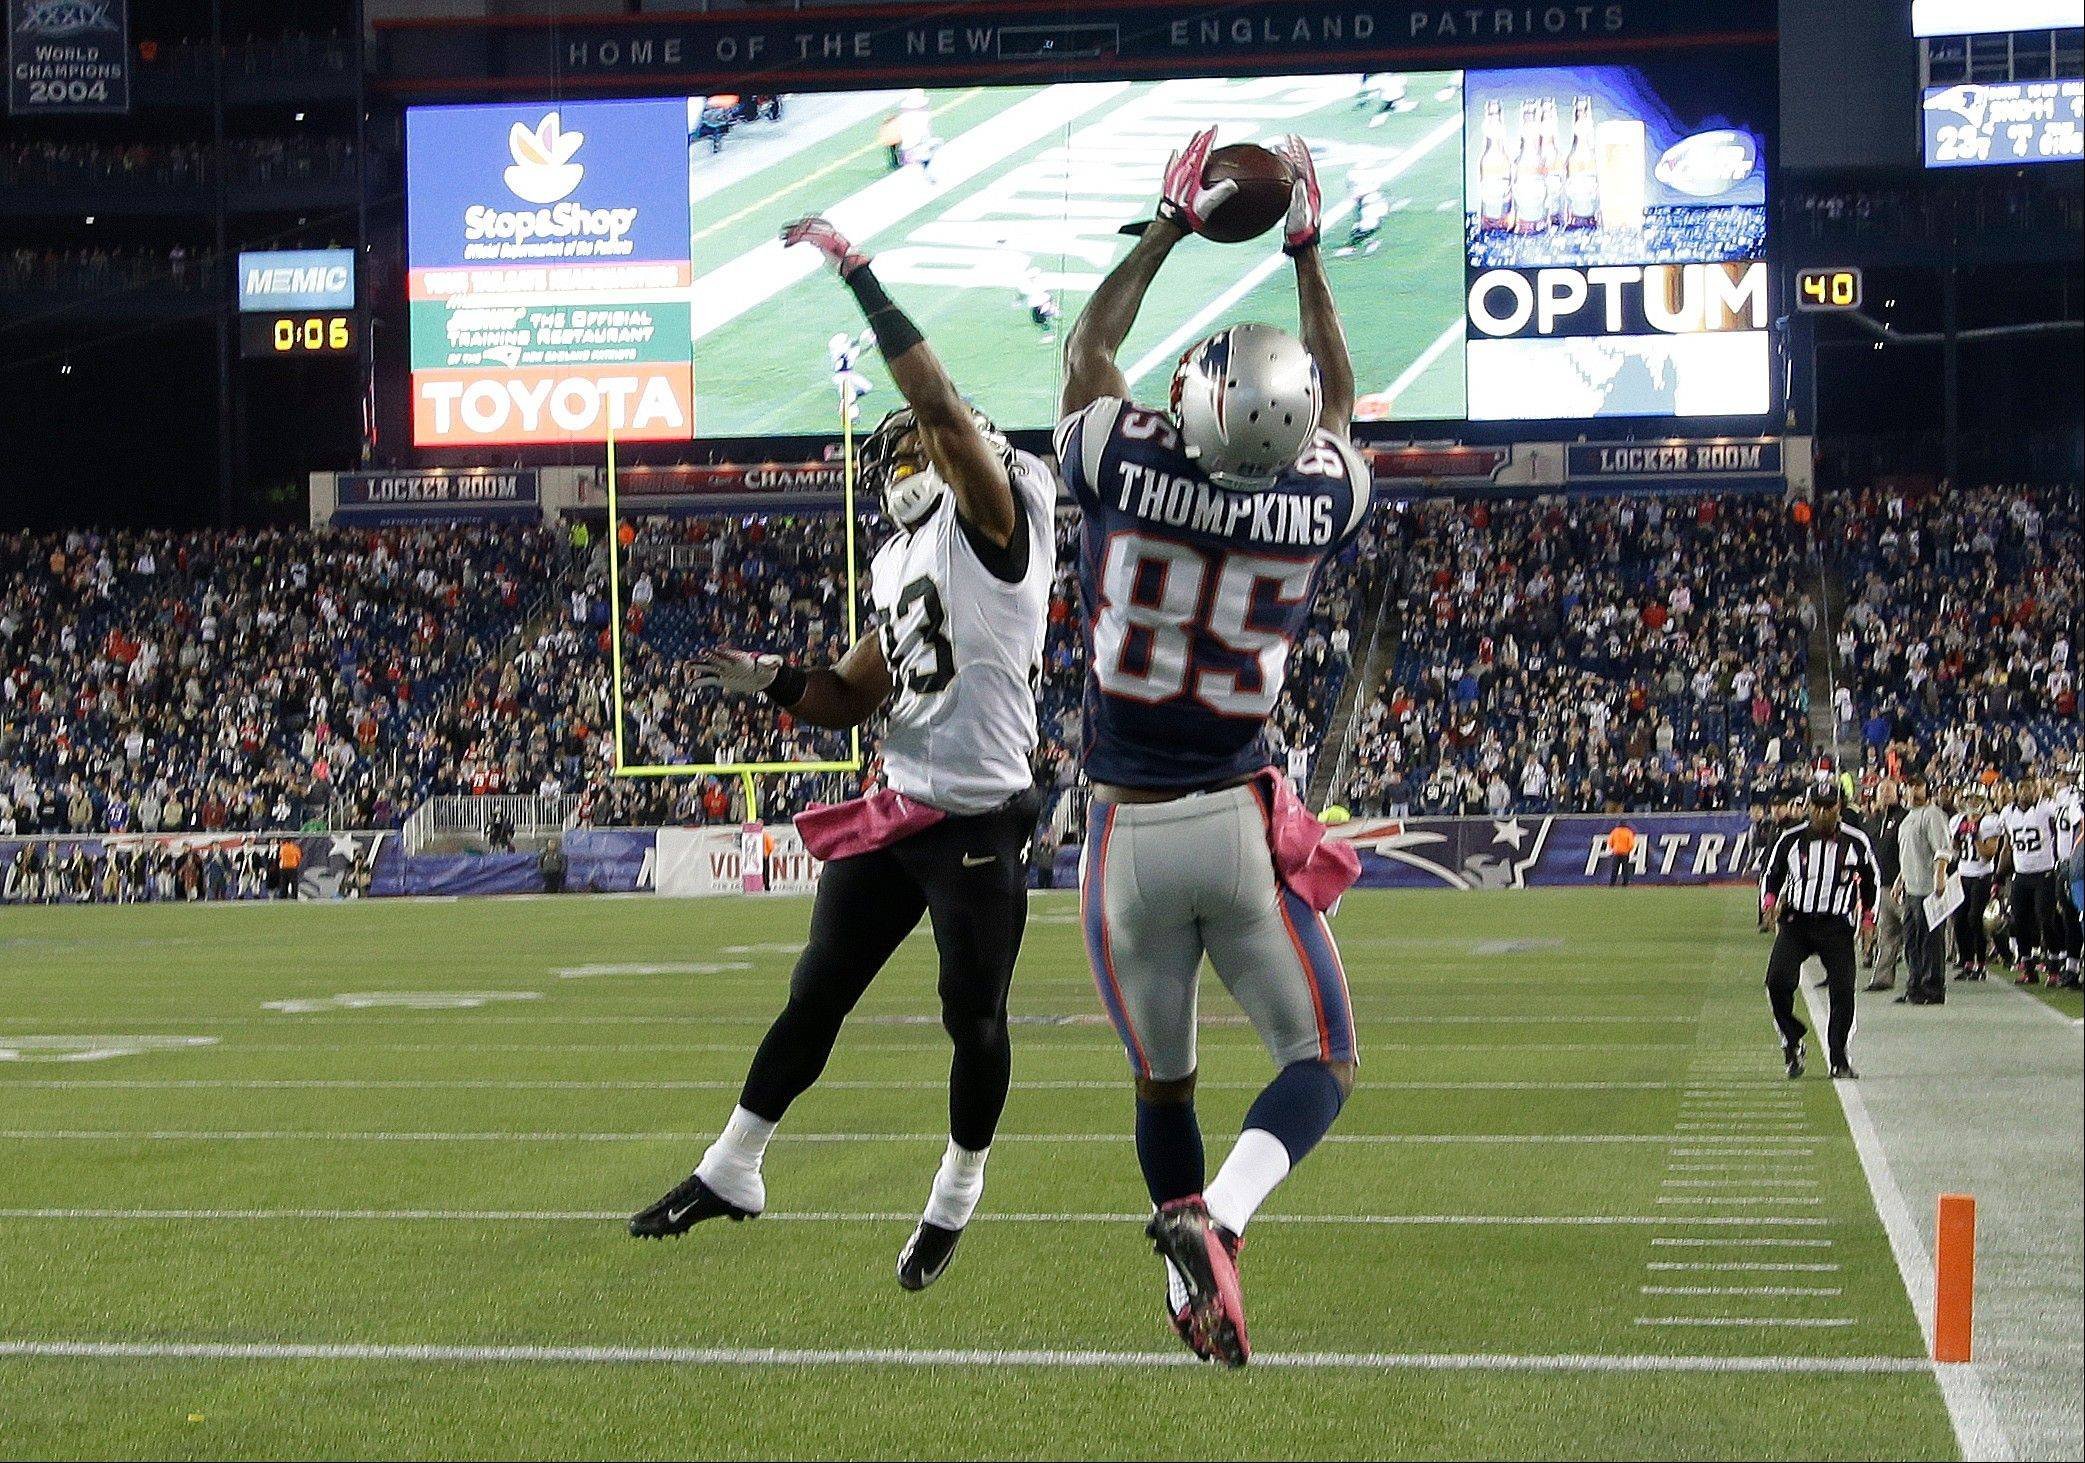 New England Patriots wide receiver Kenbrell Thompkins (85) catches the winning touchdown pass against New Orleans Saints cornerback Jabari Greer (33) in the fourth quarter of an NFL football game Sunday, Oct.13, 2013, in Foxborough, Mass. The Patriots won 30-27.